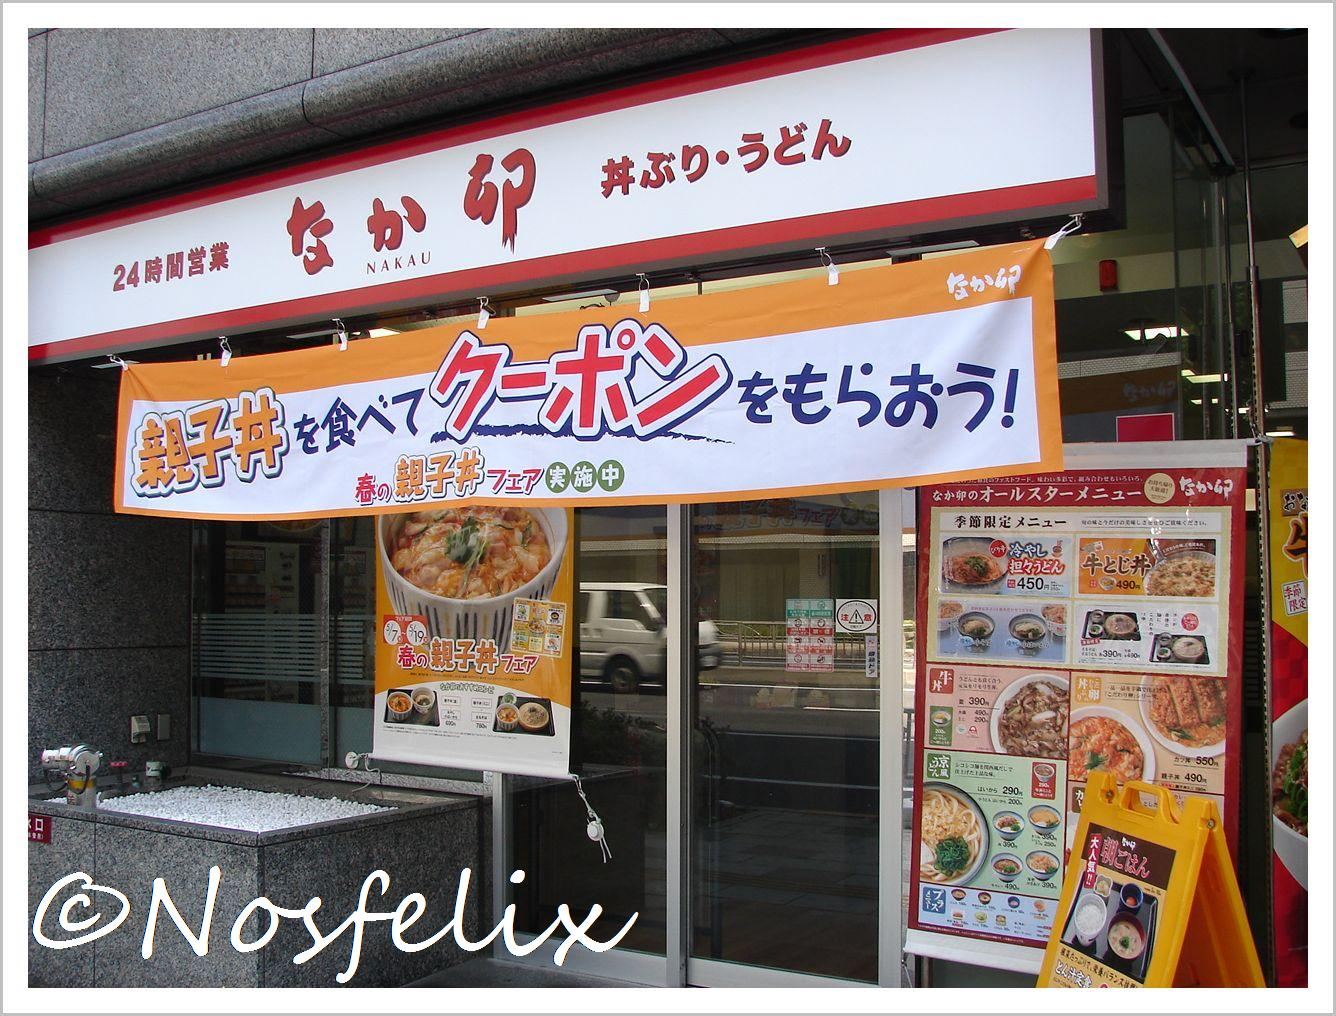 Nakau Eating Out In Tokyo Cheapest Lunch Restaurants In Tokio Eating Out In Tokyo Cheapest Lunch Restaurants In Tokio